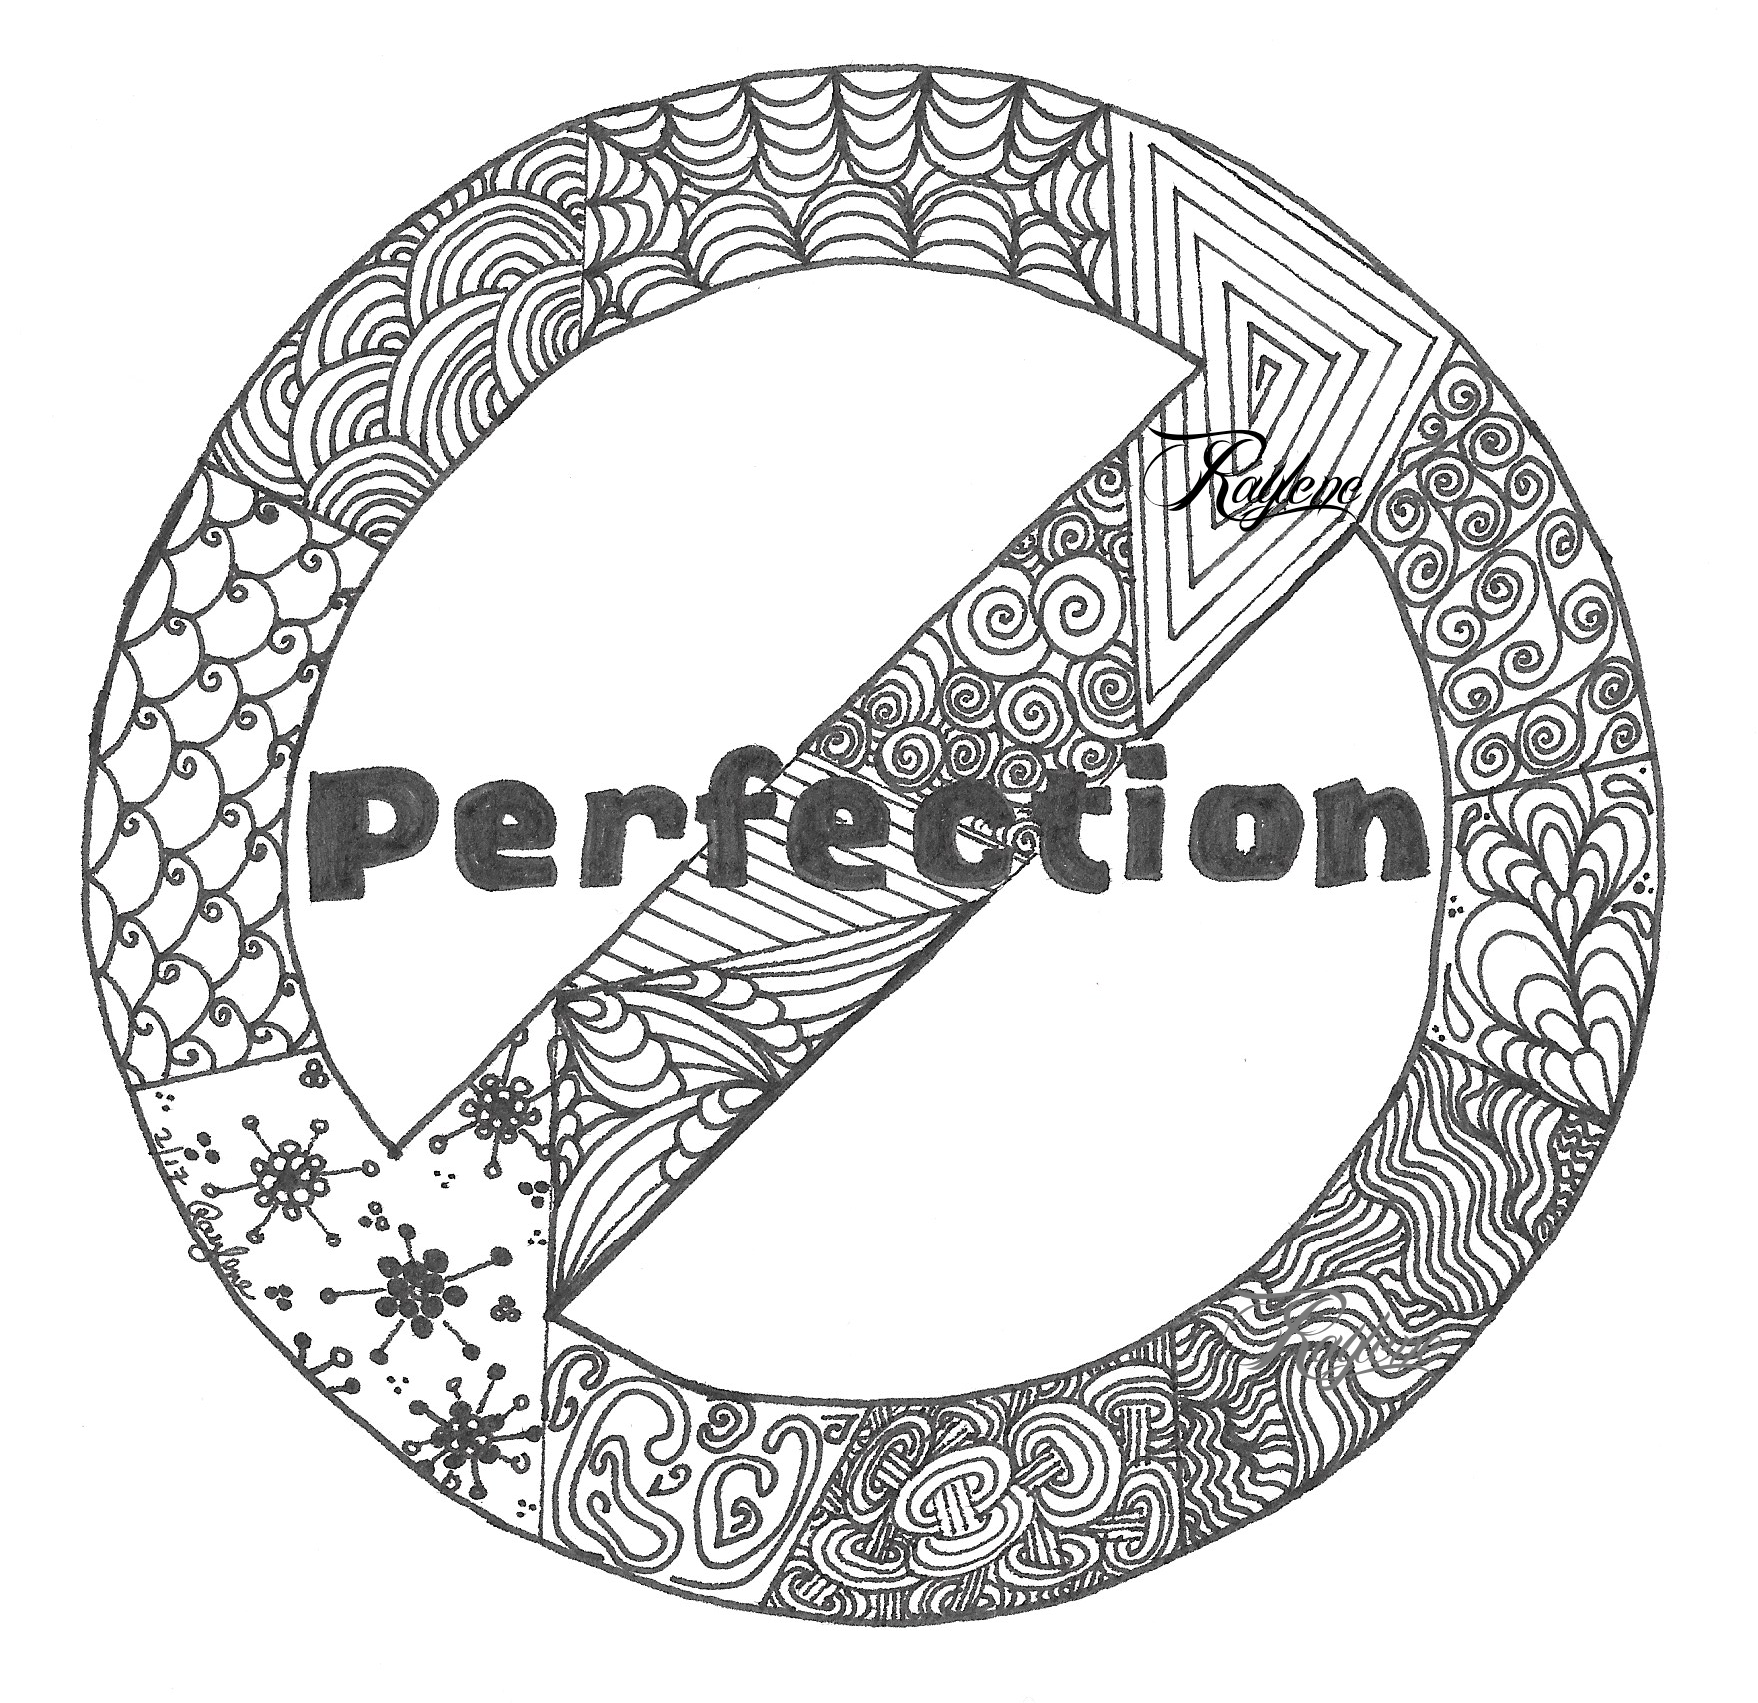 Not Perfection - zentangled